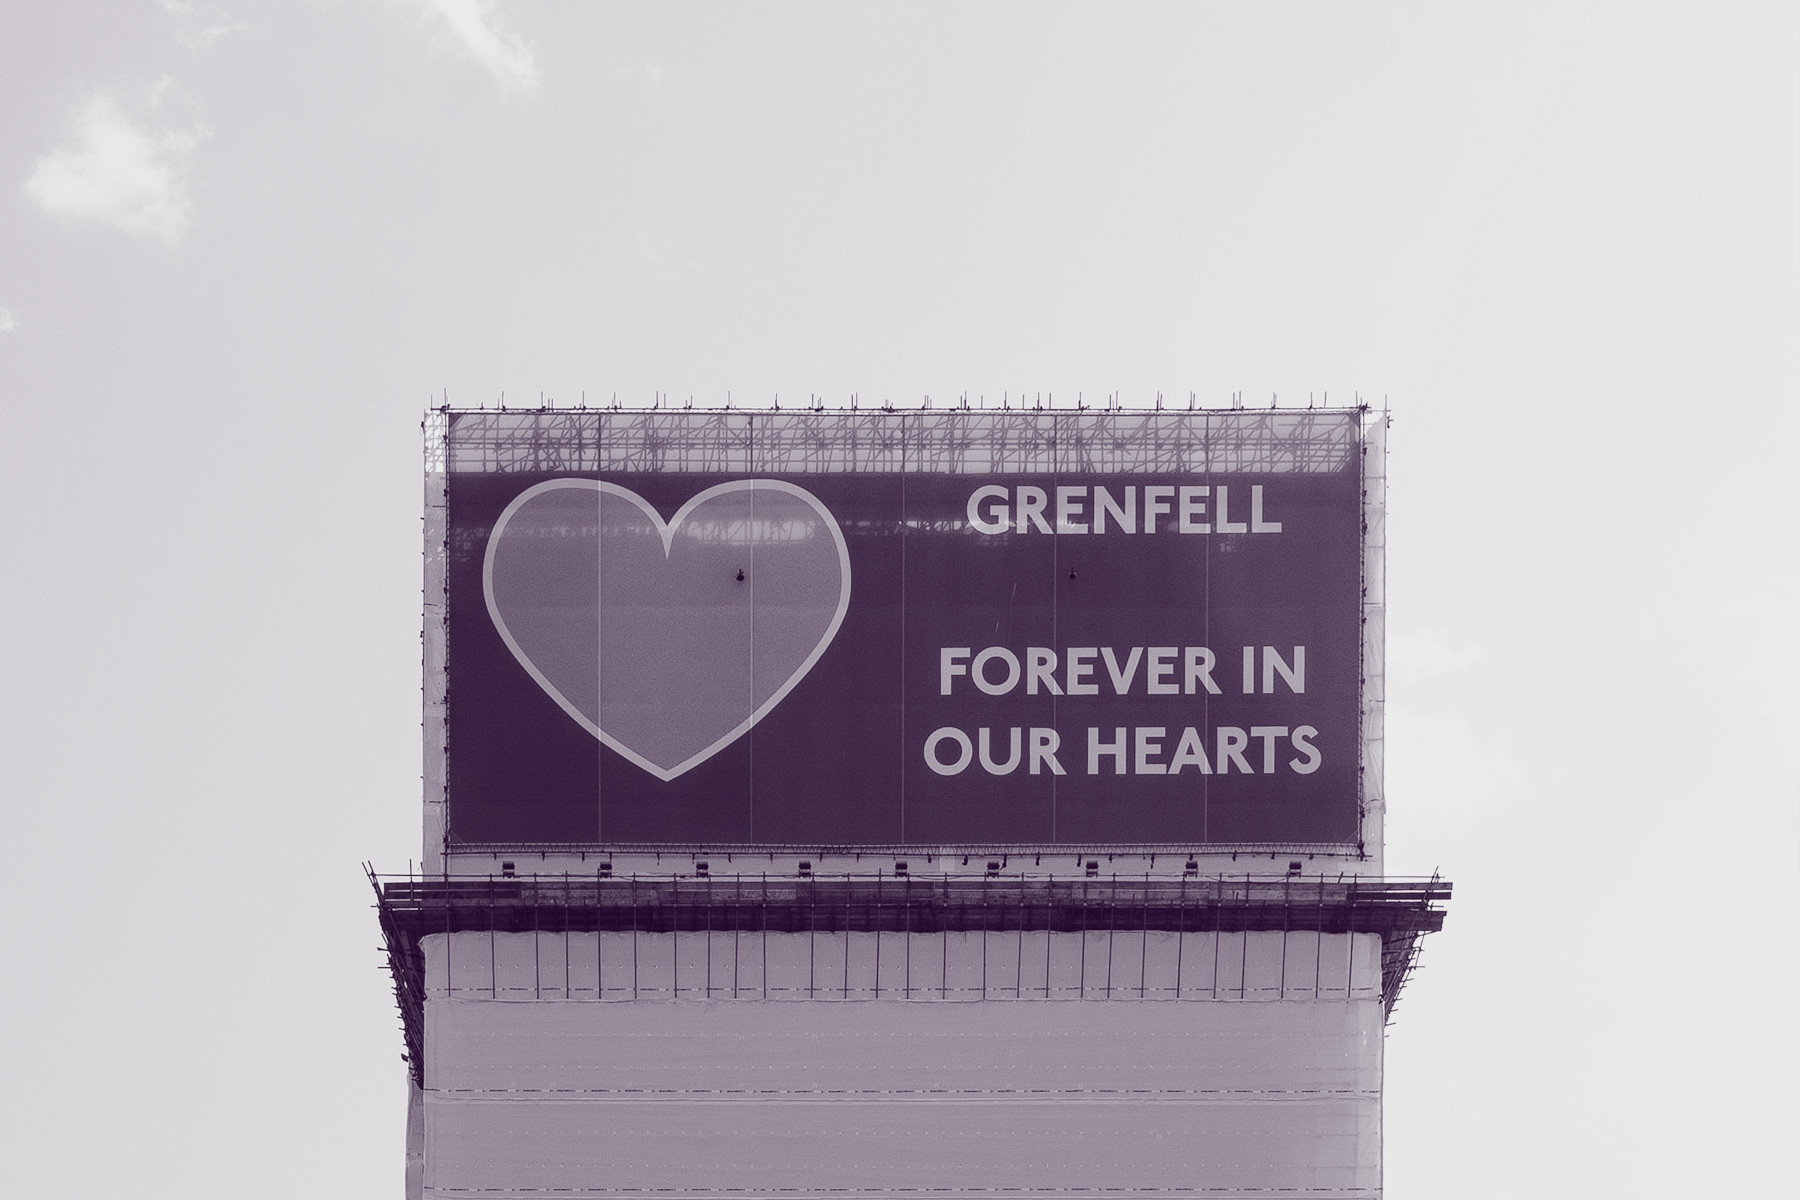 Ironclad uncertainty: Grenfell legacy still worrying leaseholders